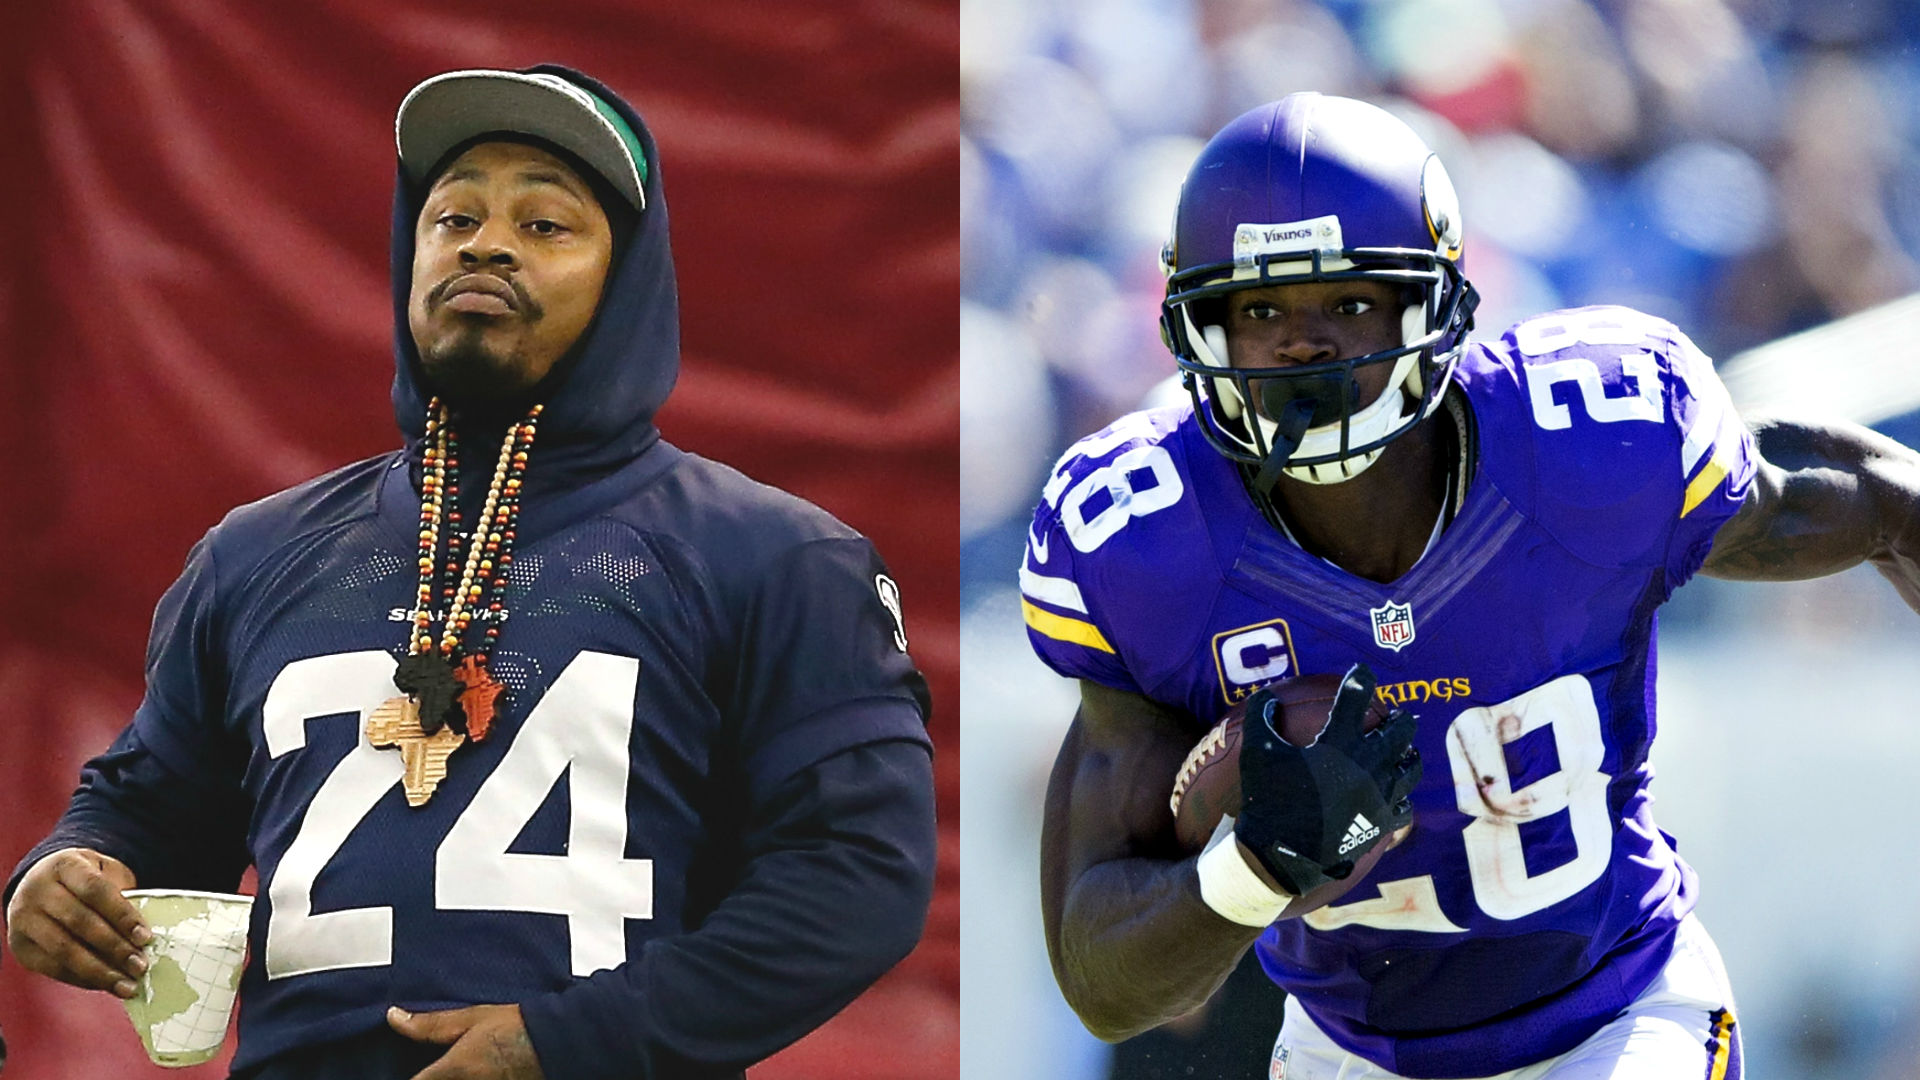 Is Marshawn Lynch a better option than all available RBs in free agency? | NFL | Sporting News